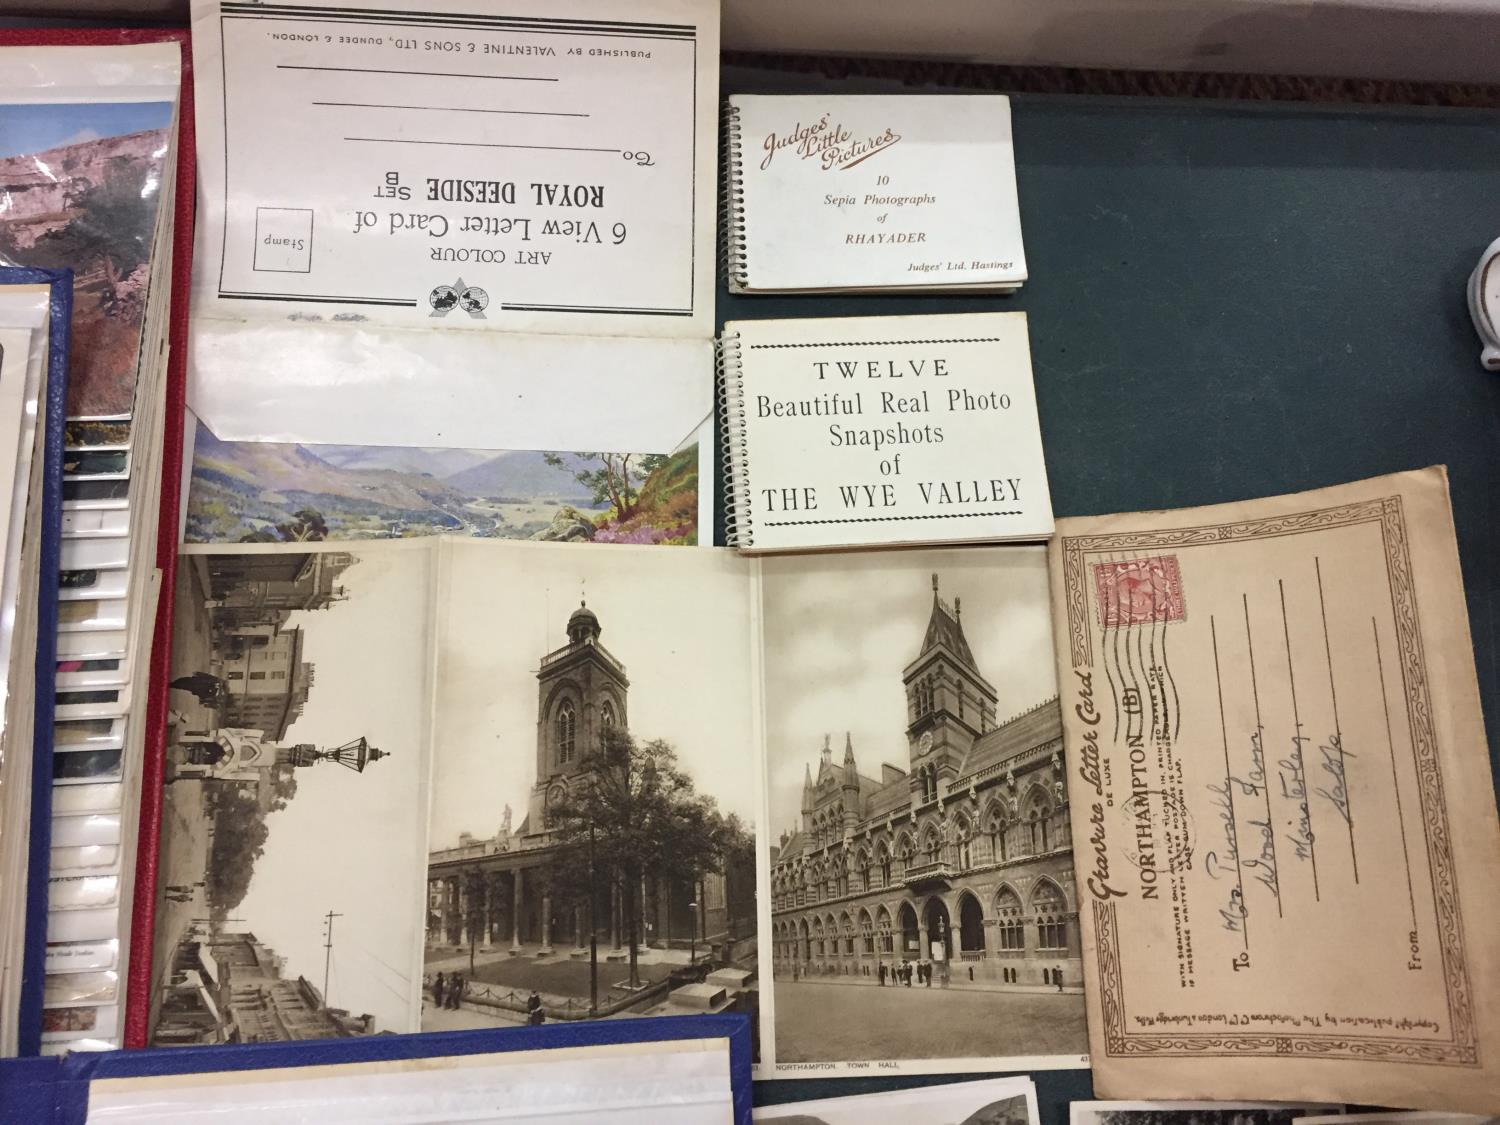 A LARGE COLLECTION OF 550+ ANTIQUE AND VINTAGE POSTCARDS RANGING FROM 1908-1970'S. MAINLEY UK - SOME - Image 14 of 14